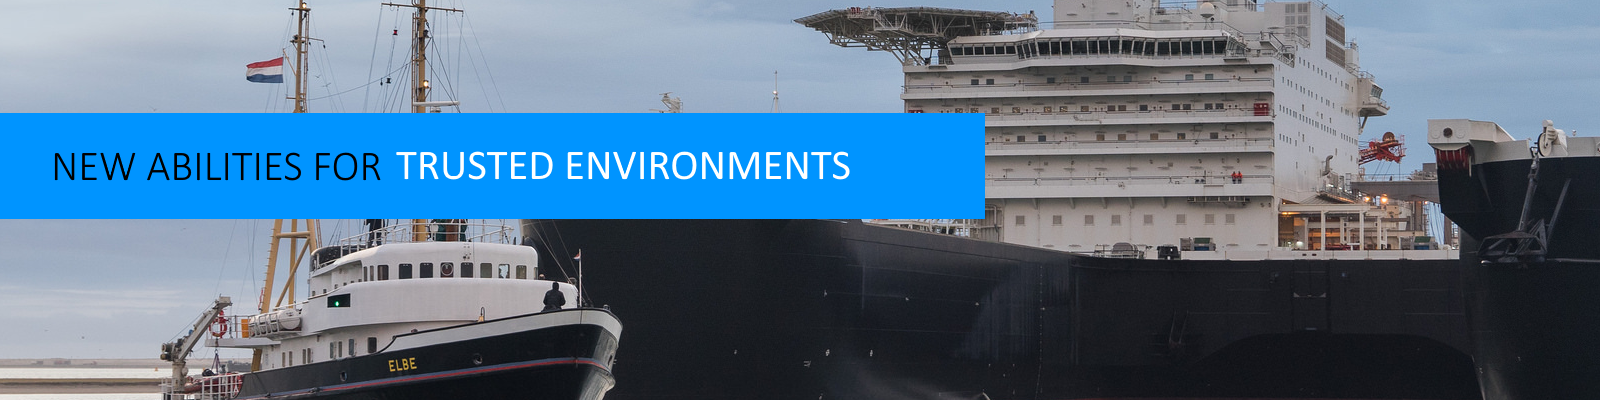 nC Marine. New ideas. Trusted environments.